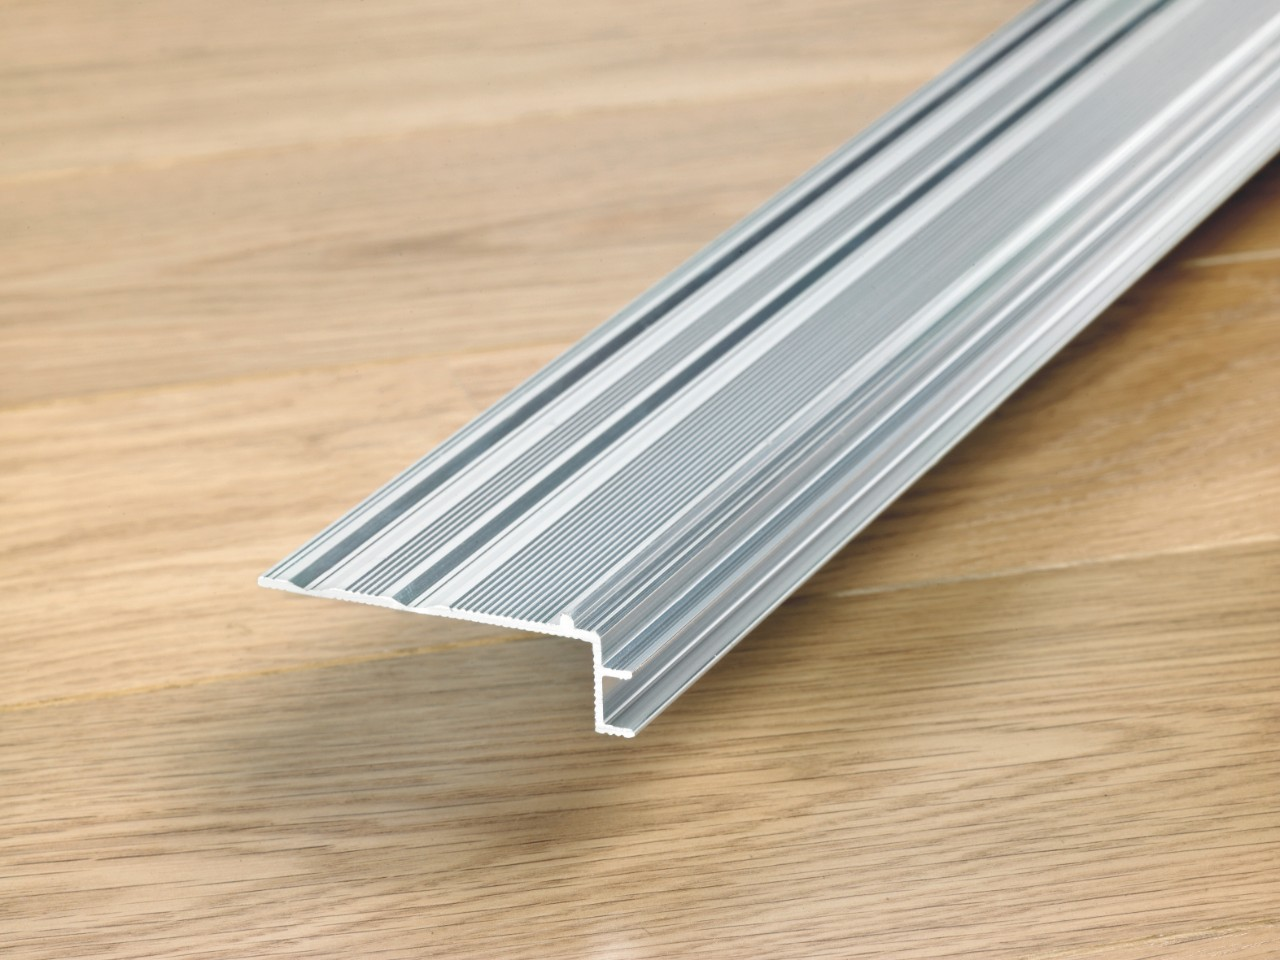 NEINCPBASE Laminate Accessories Incizo Aluminium Subprofile For Stairs NEINCPBASE7